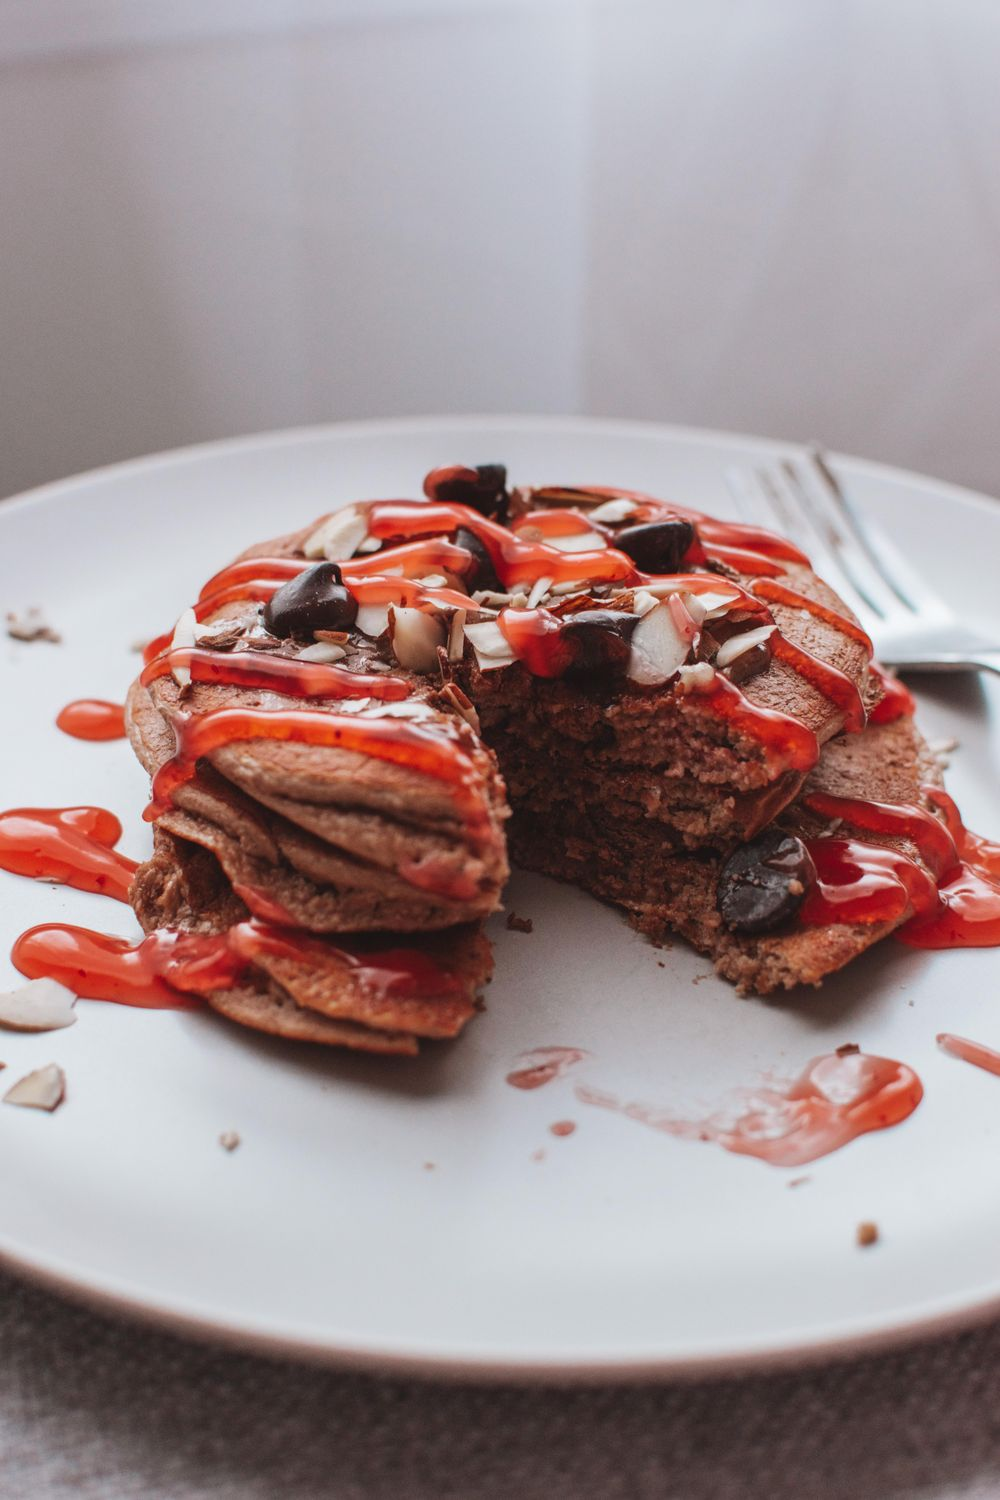 Pancakes - image 2 - student project